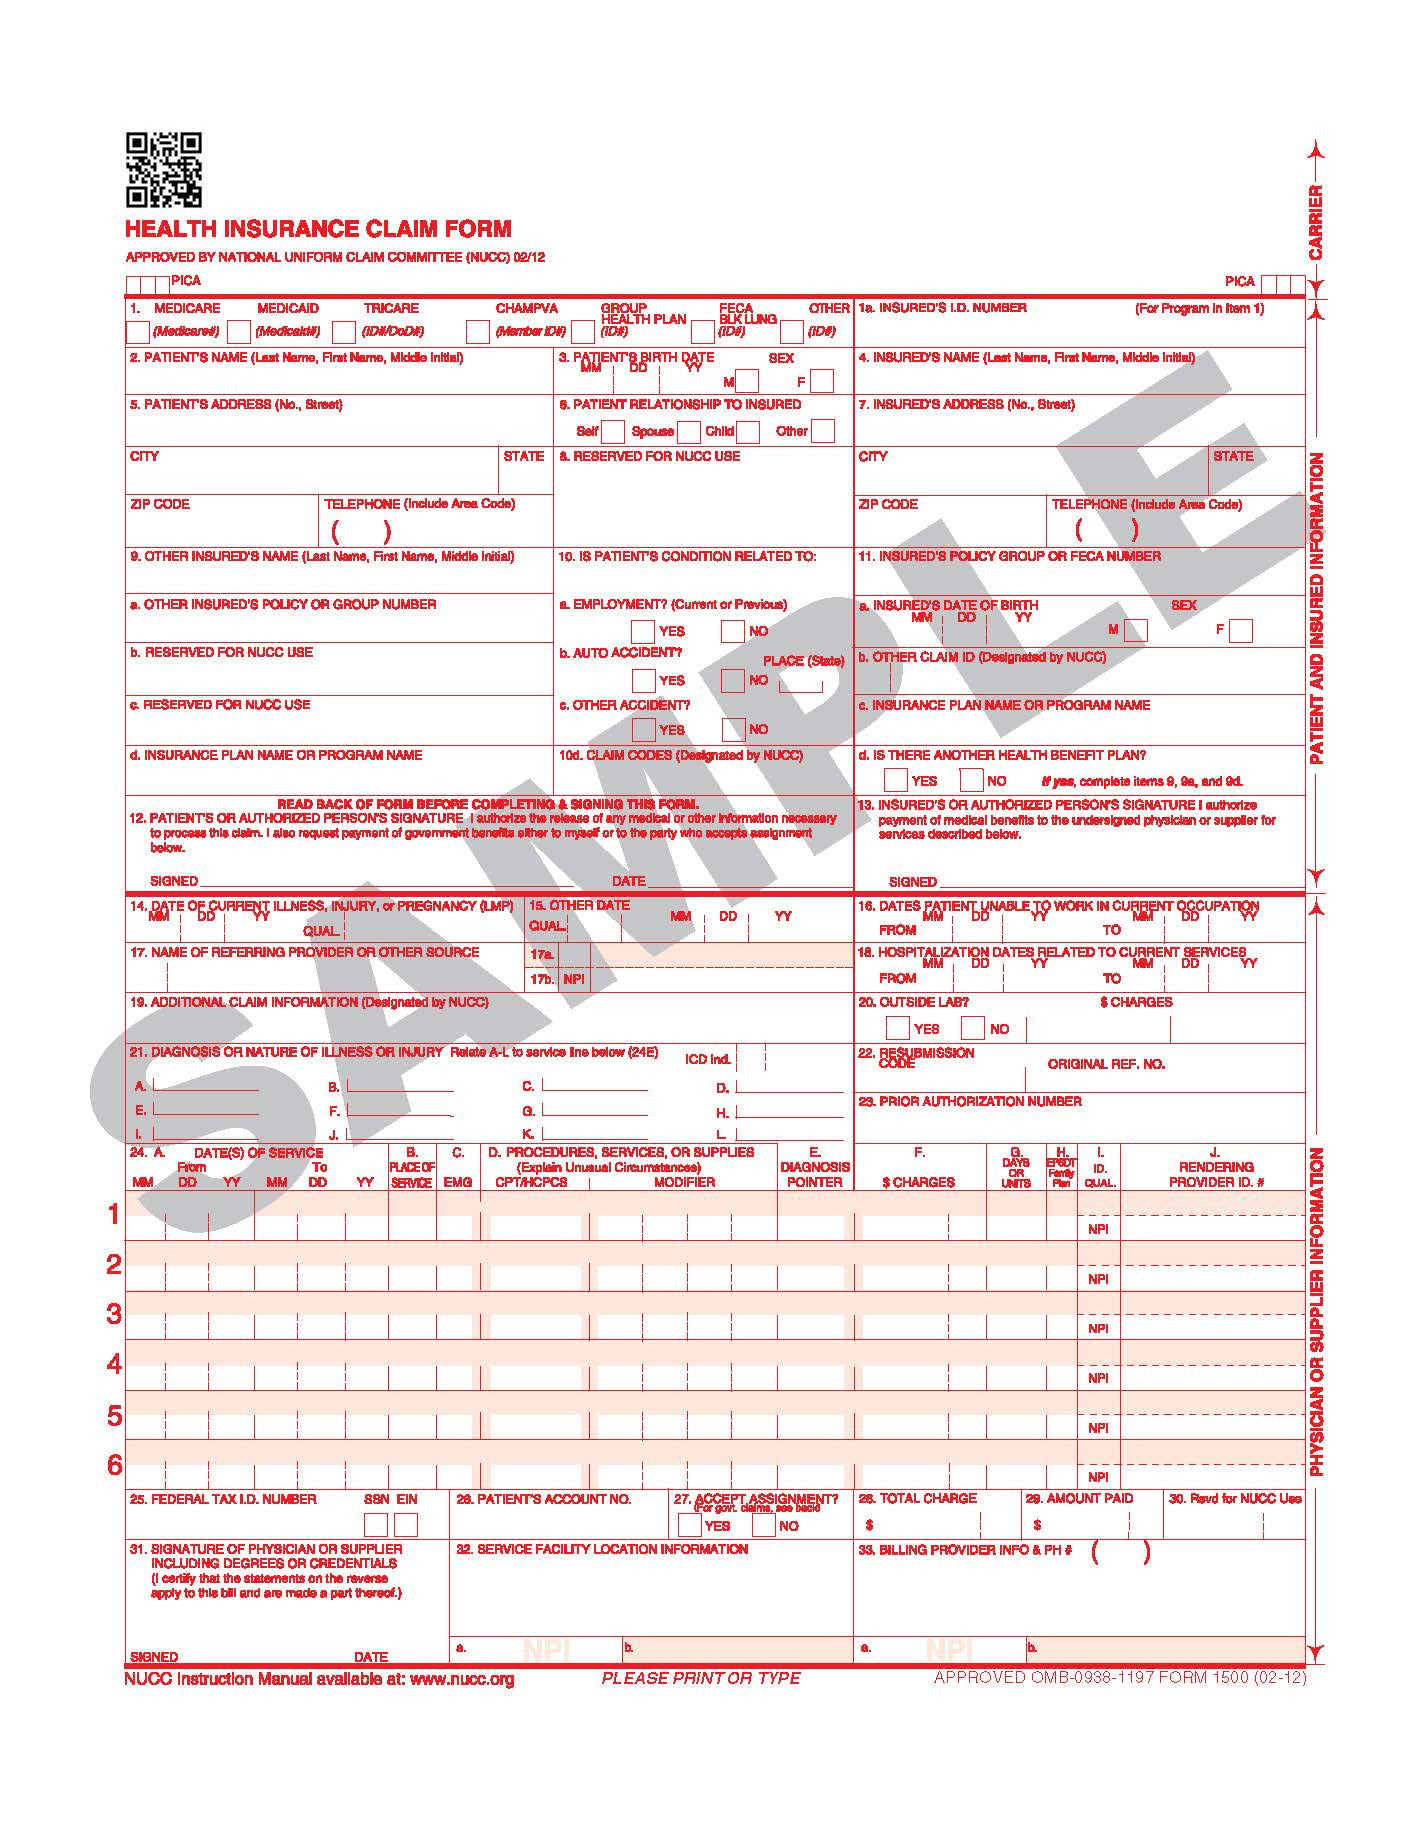 NEW CMS 1500 claim form version 2012_02